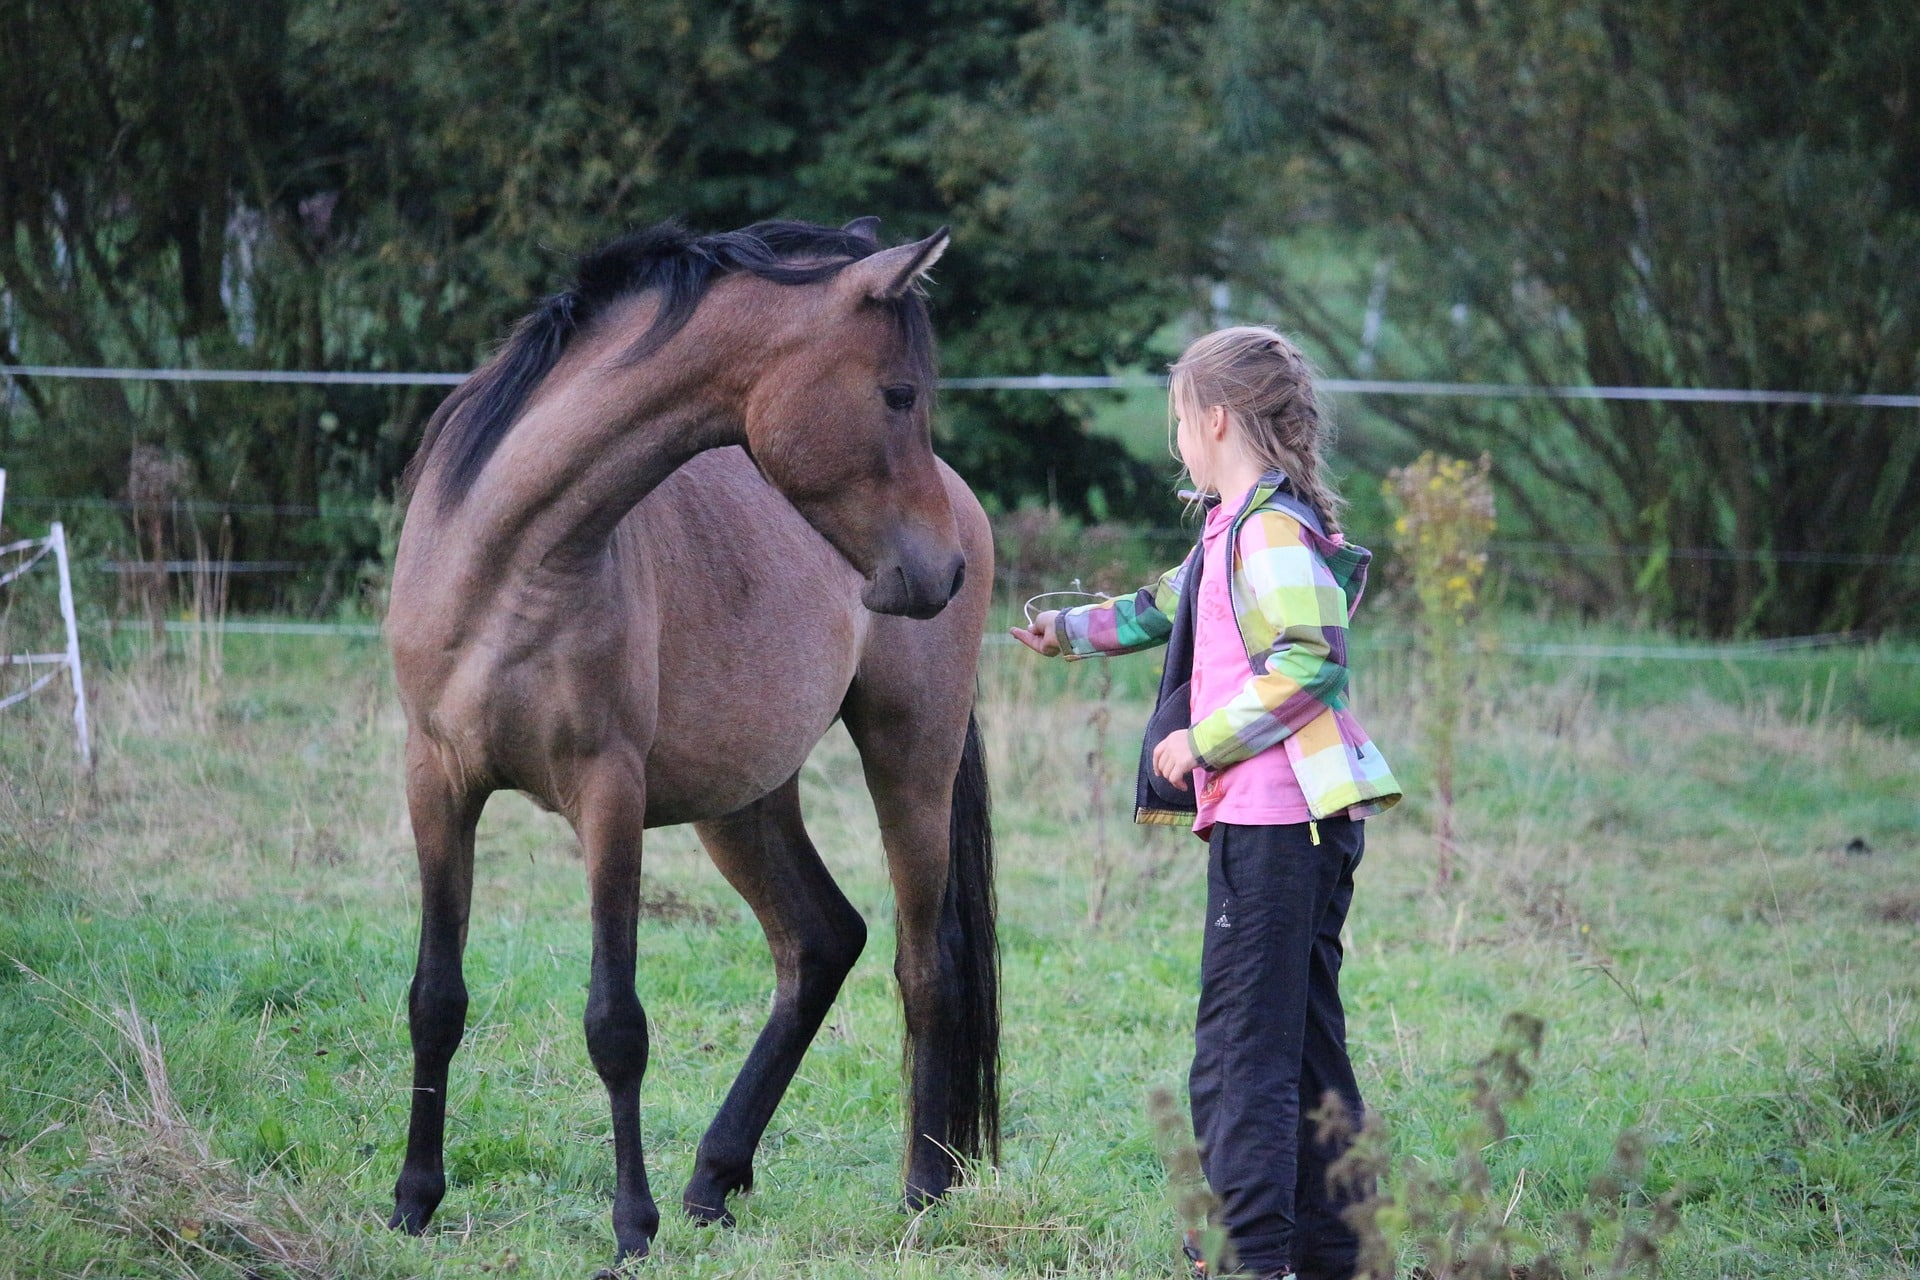 Should I buy my daughter a horse? horses teach responsibility